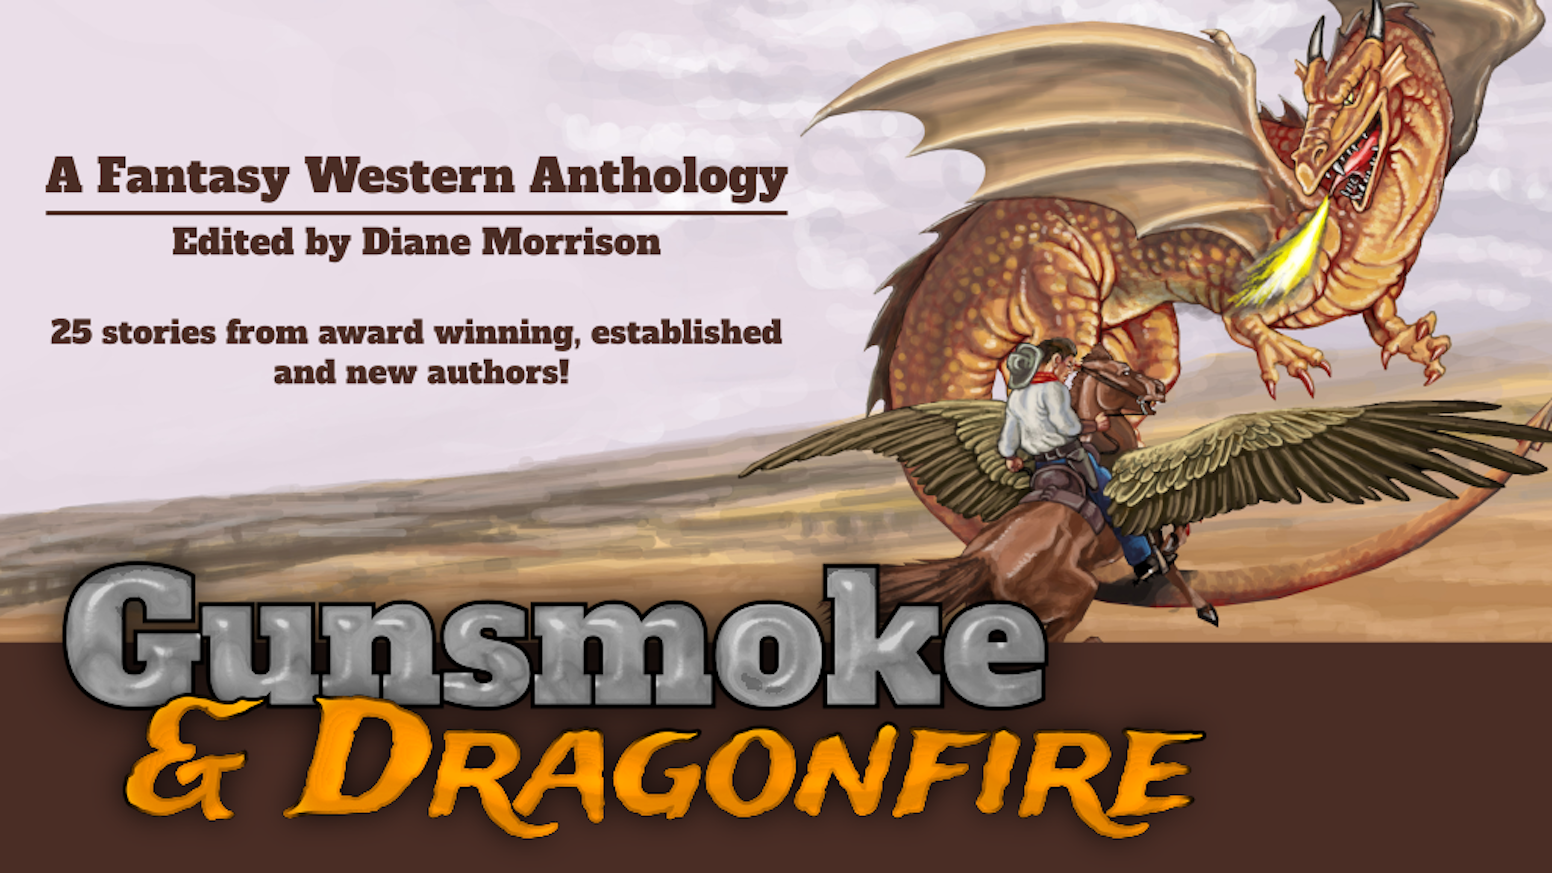 Fantasy, sci-fi, alt-history, post-apoc, cattlepunk & weird west stories by an international stable of established & emerging authors.